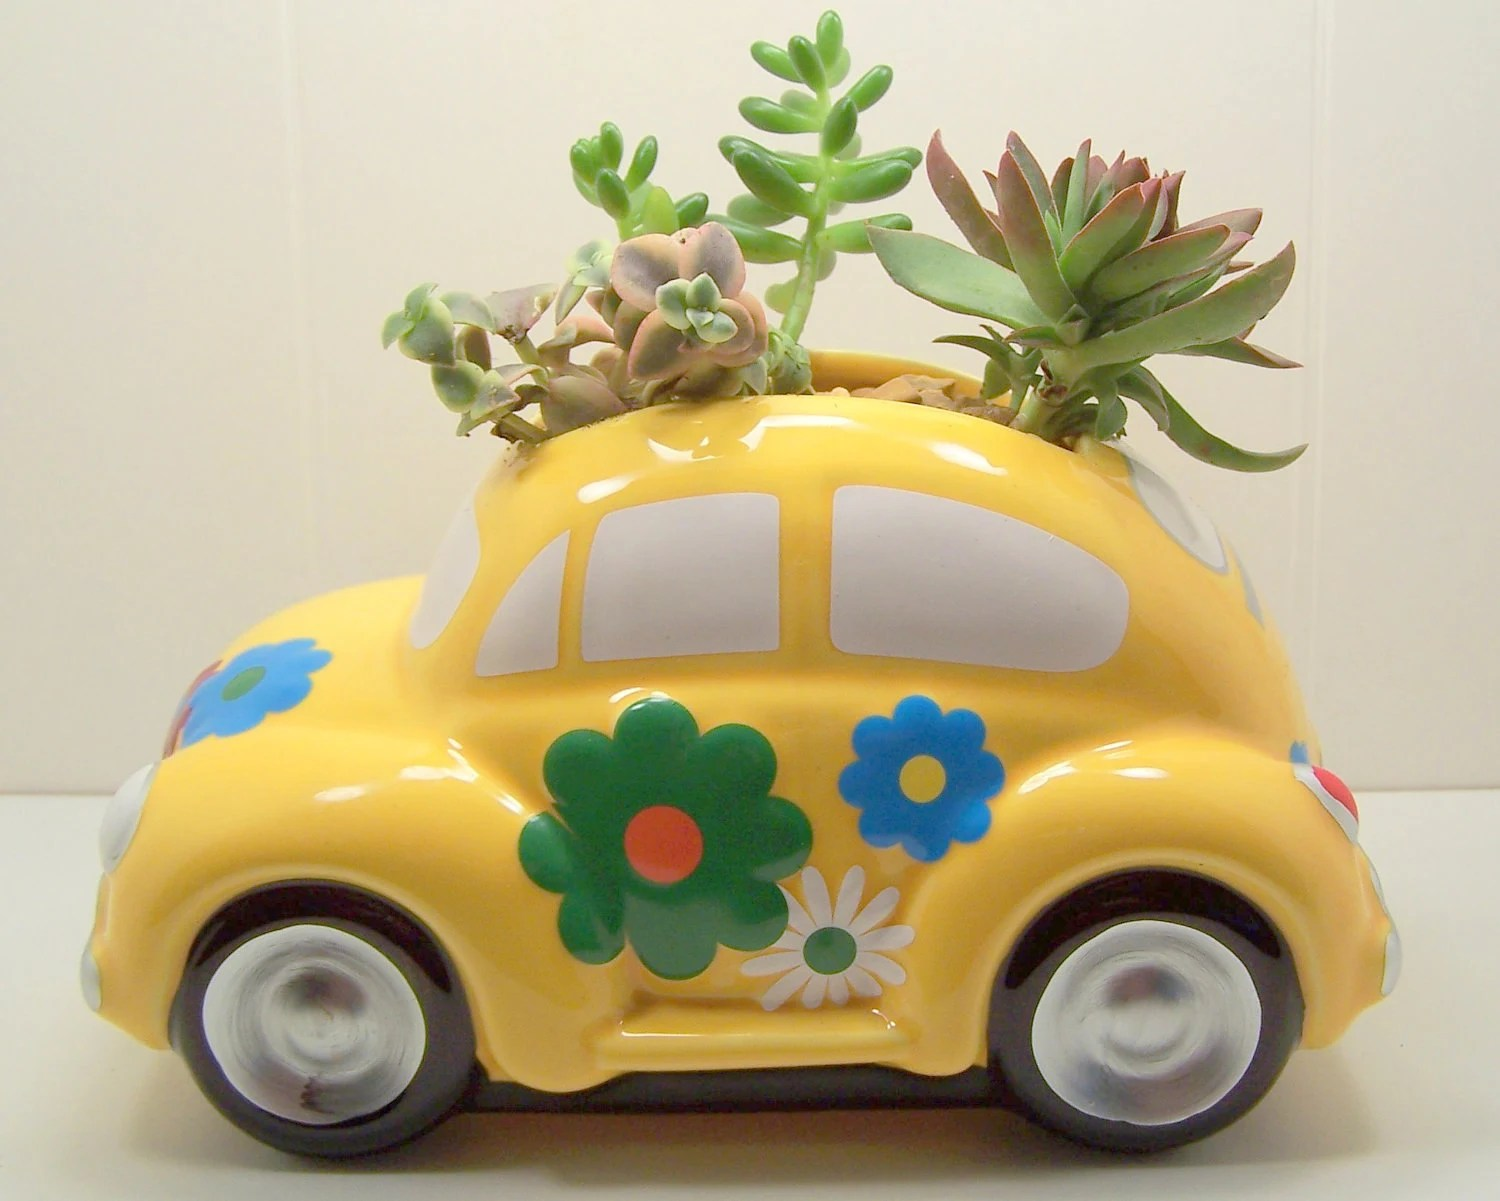 Succulent planter LOVE Bug DIY kit